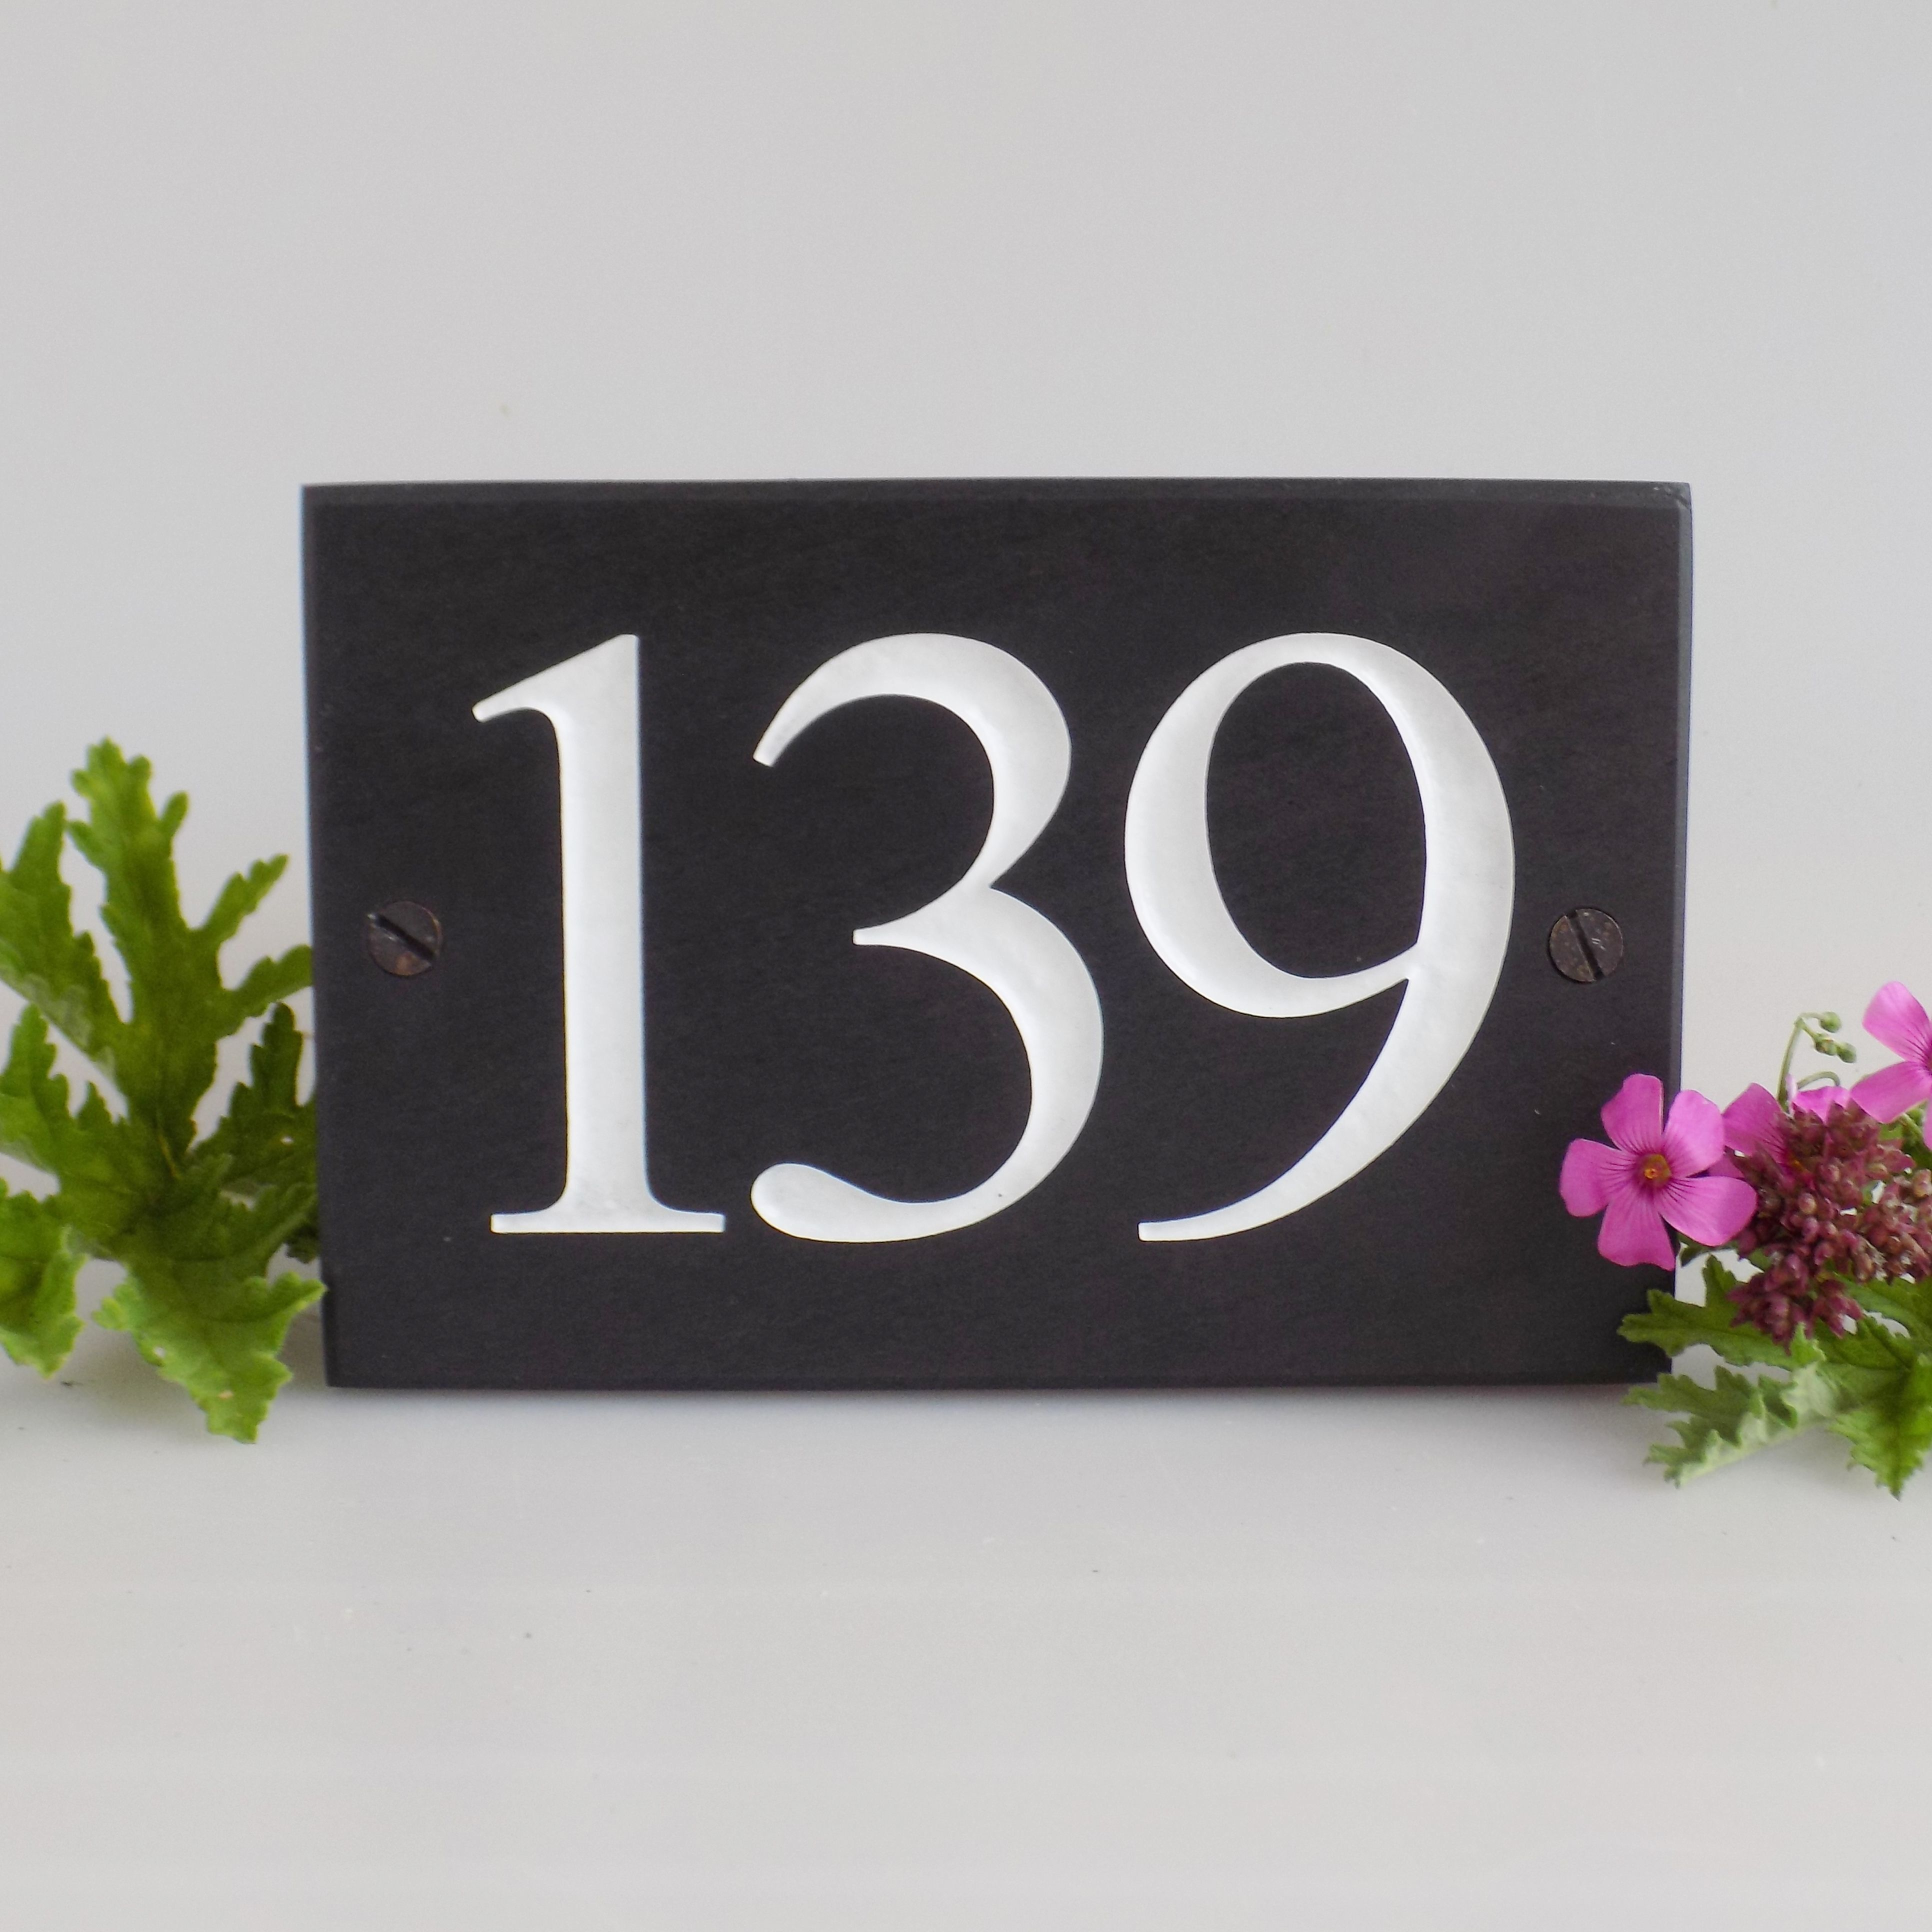 Personalised Slate Number Signs Small Letters Slate The Slate